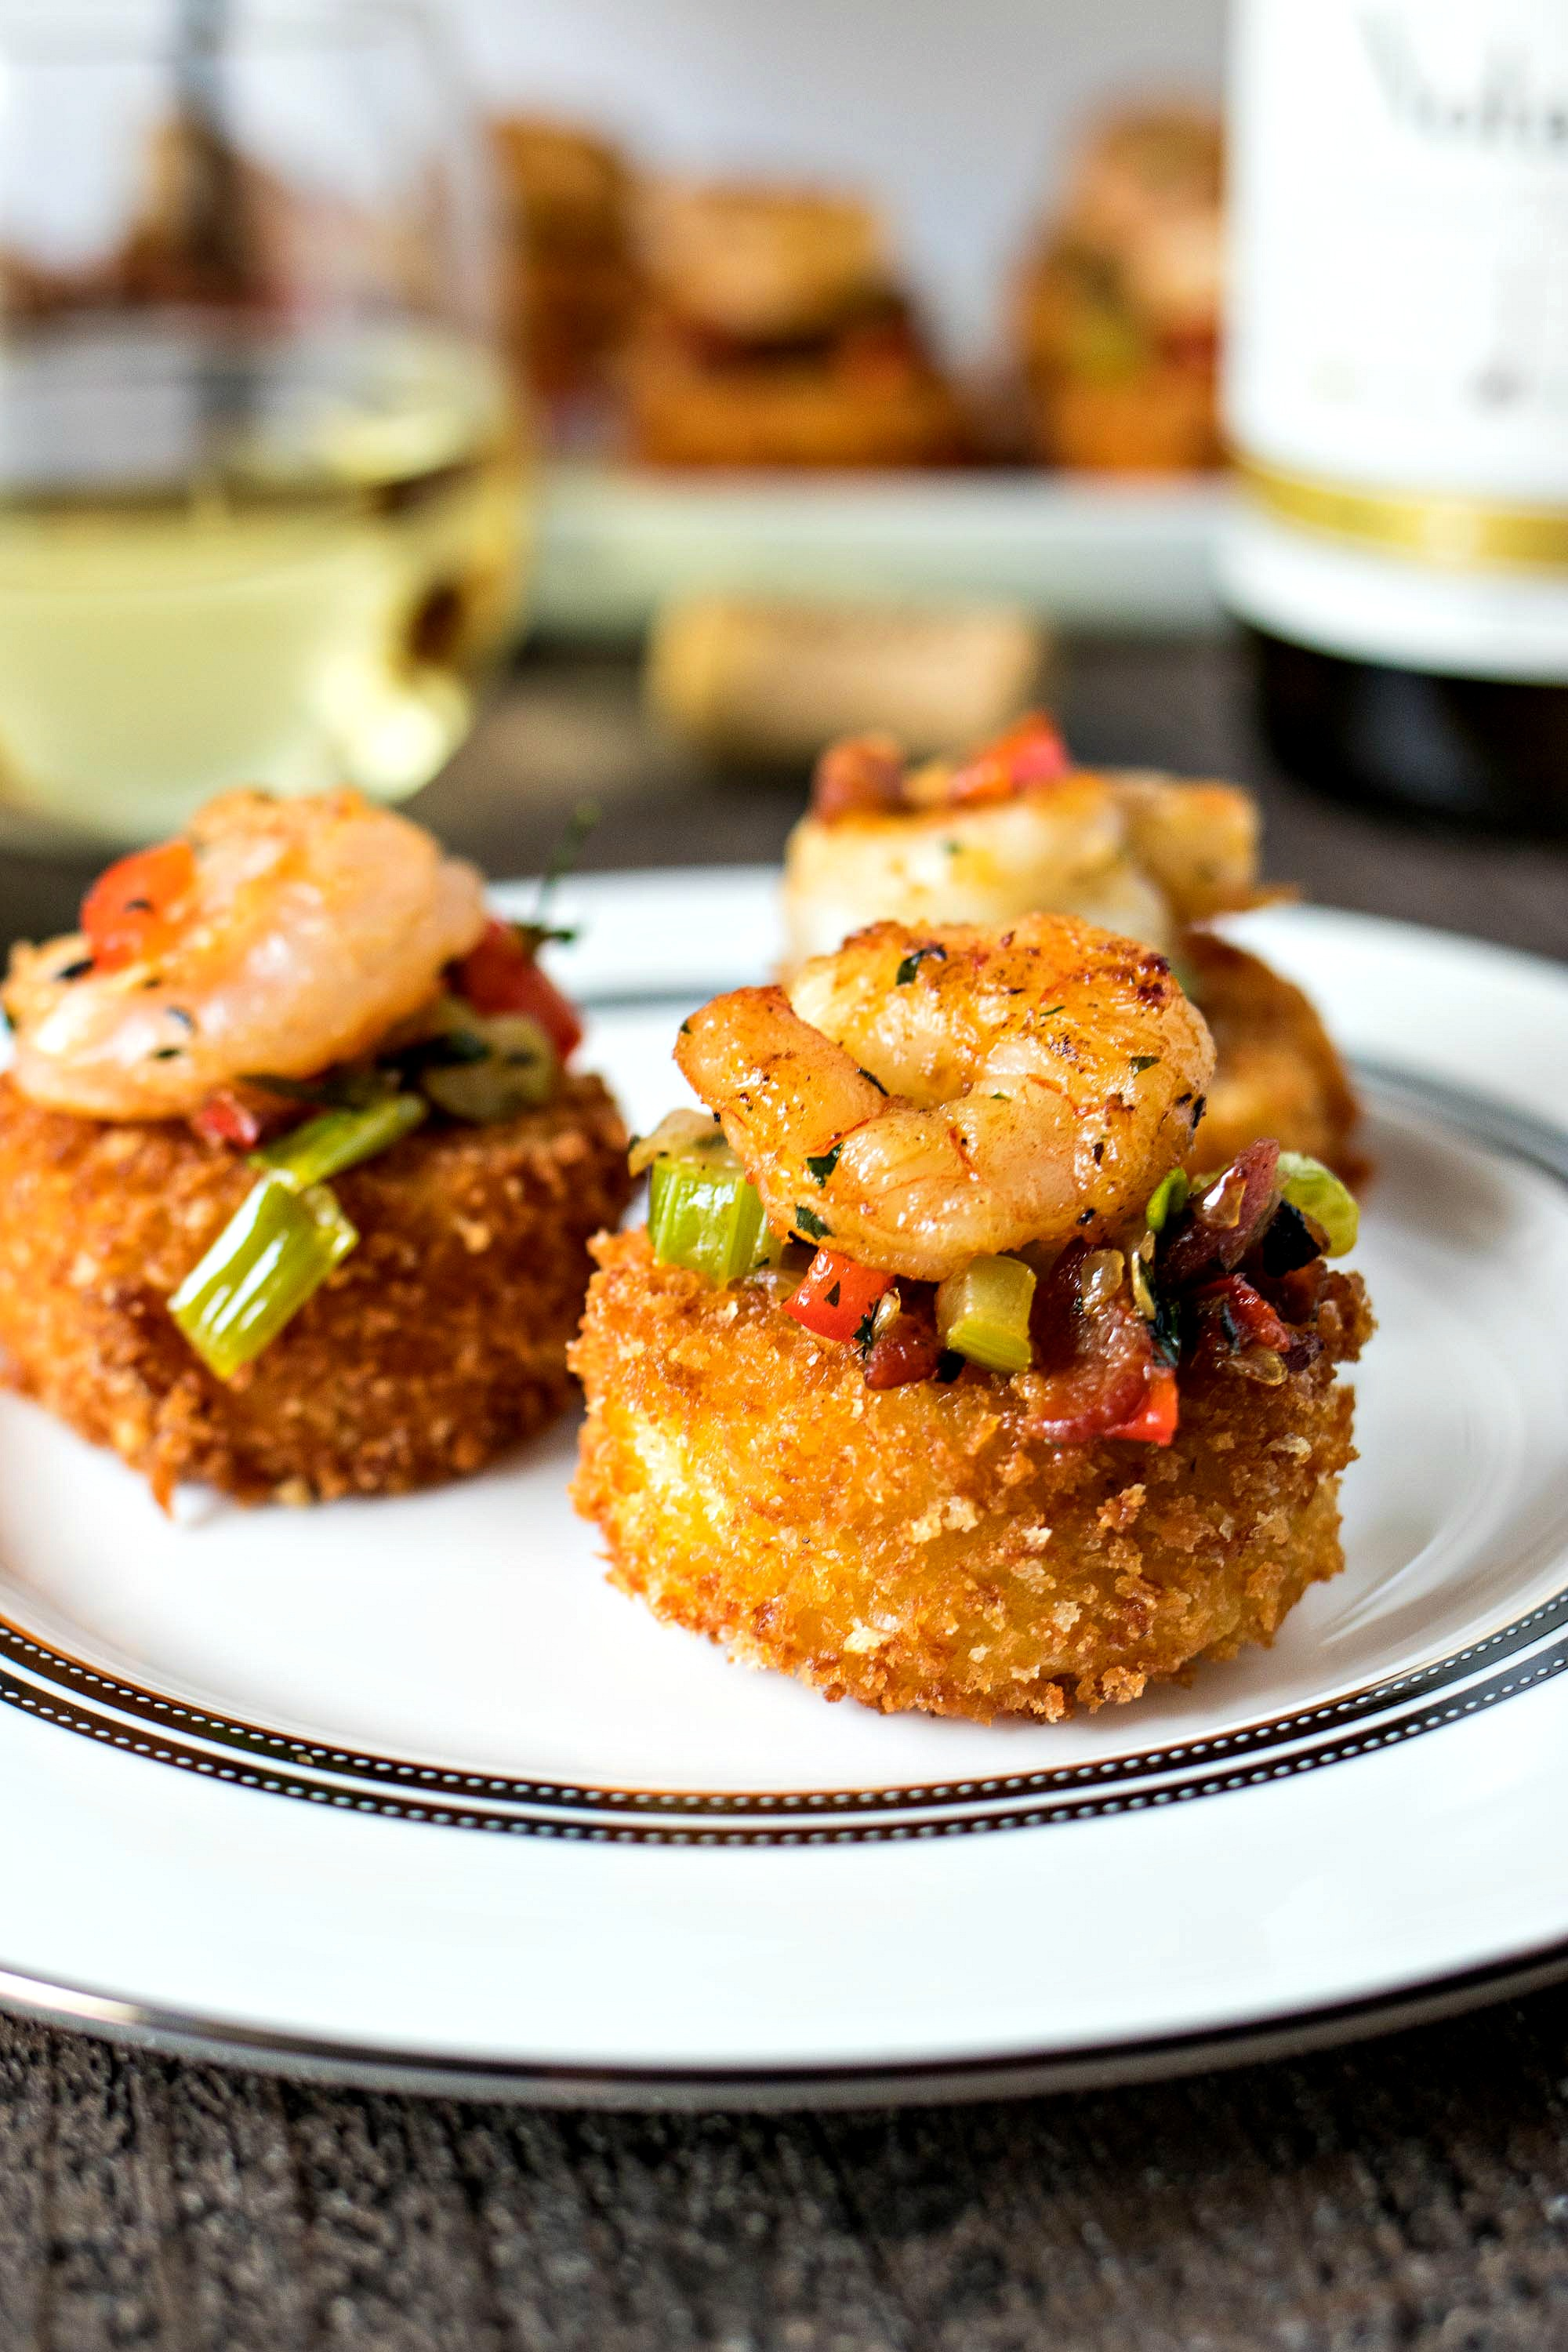 Plate of Shrimp & Grit Cake Bites